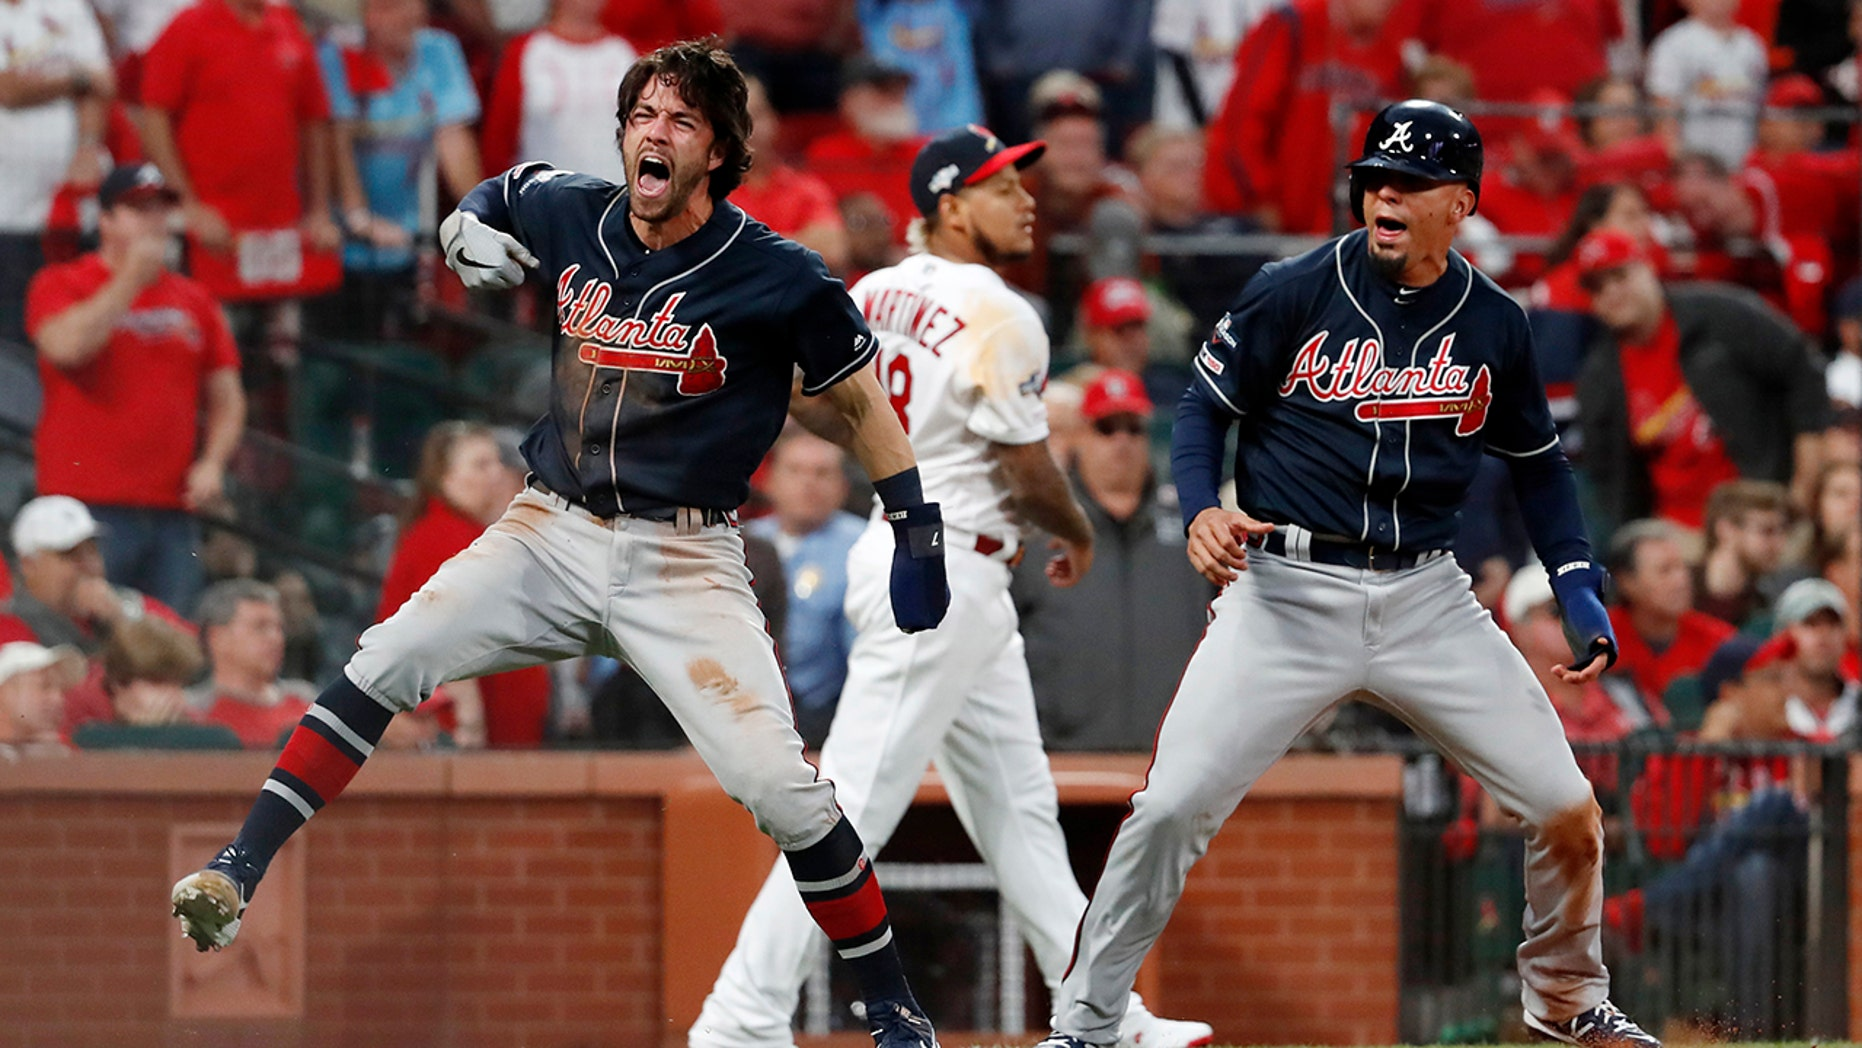 Westlake Legal Group MLB-Dansby-Swanson Duvall, Braves rally in 9th to beat Cards 3-1, lead NLDS 2-1 fox-news/sports/mlb/st-louis-cardinals fox-news/sports/mlb/atlanta-braves fox-news/sports/mlb-postseason fox-news/sports/mlb fnc/sports fnc b190e35f-fc99-5218-8bf2-00f2ff620a41 Associated Press article